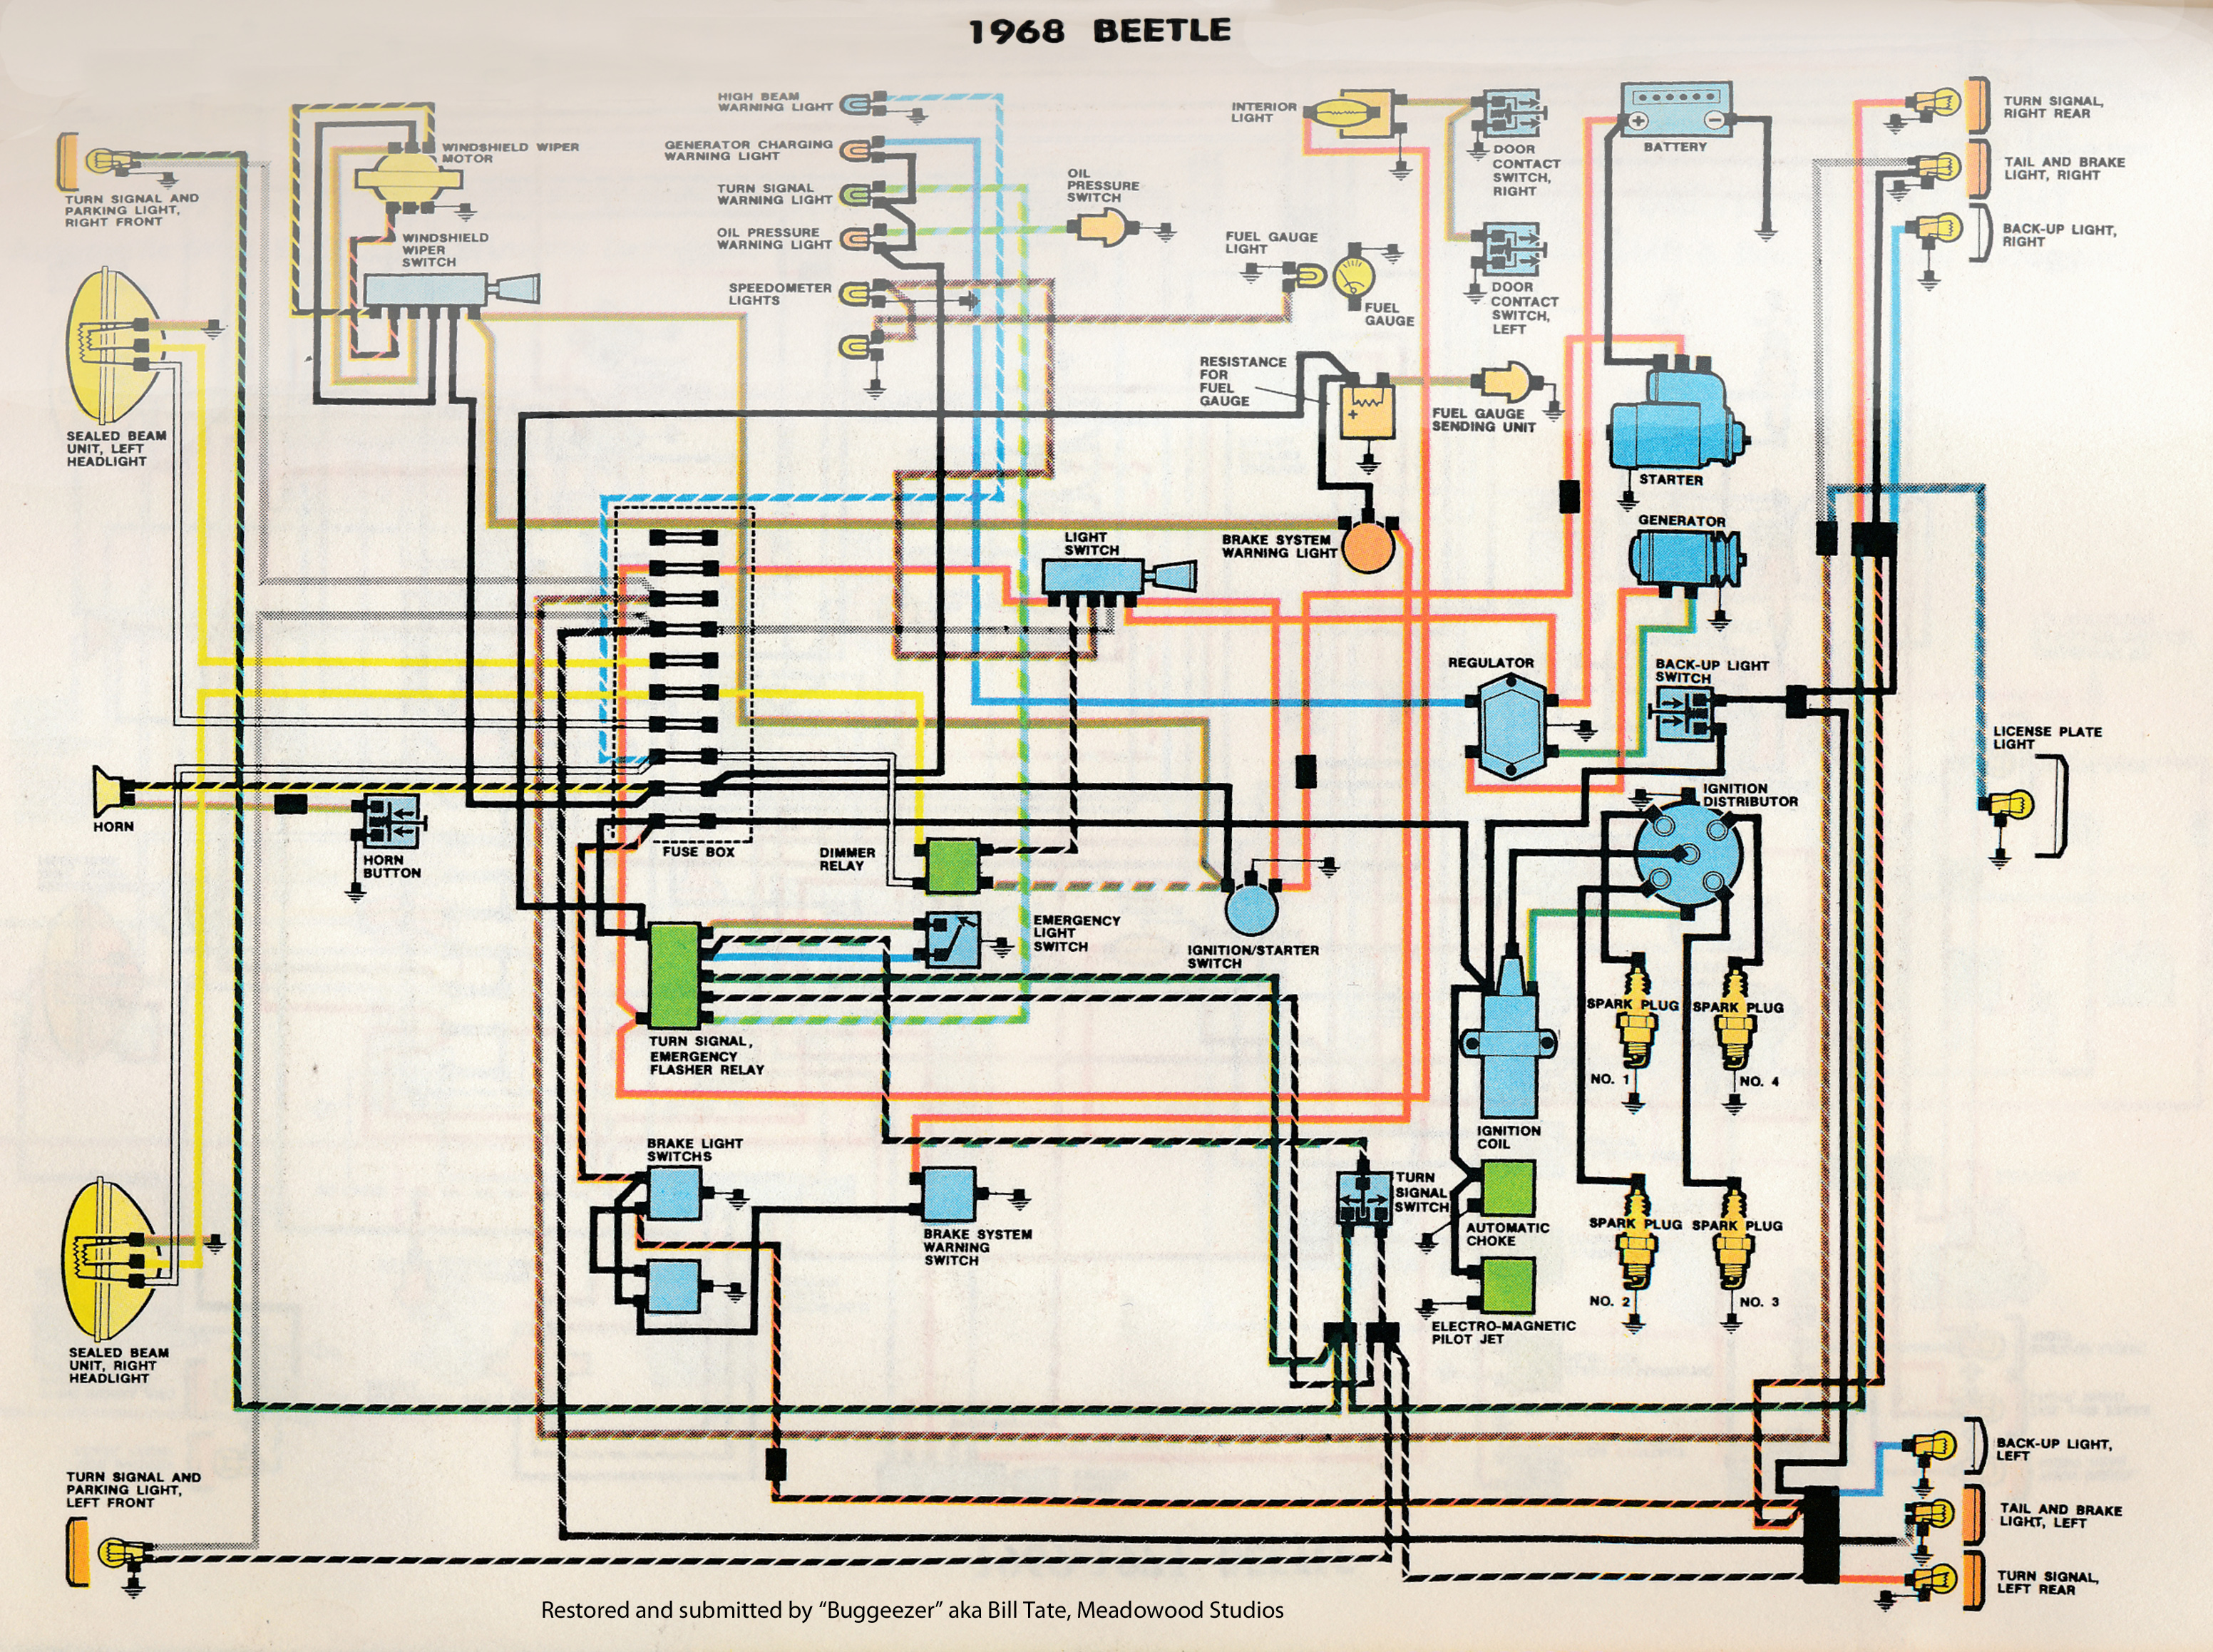 68 Karmann Ghia Wiring Diagram Library Vw Ther With 1974 1969 Beetle 1968 Clymersresize6652c496 Bug Harness